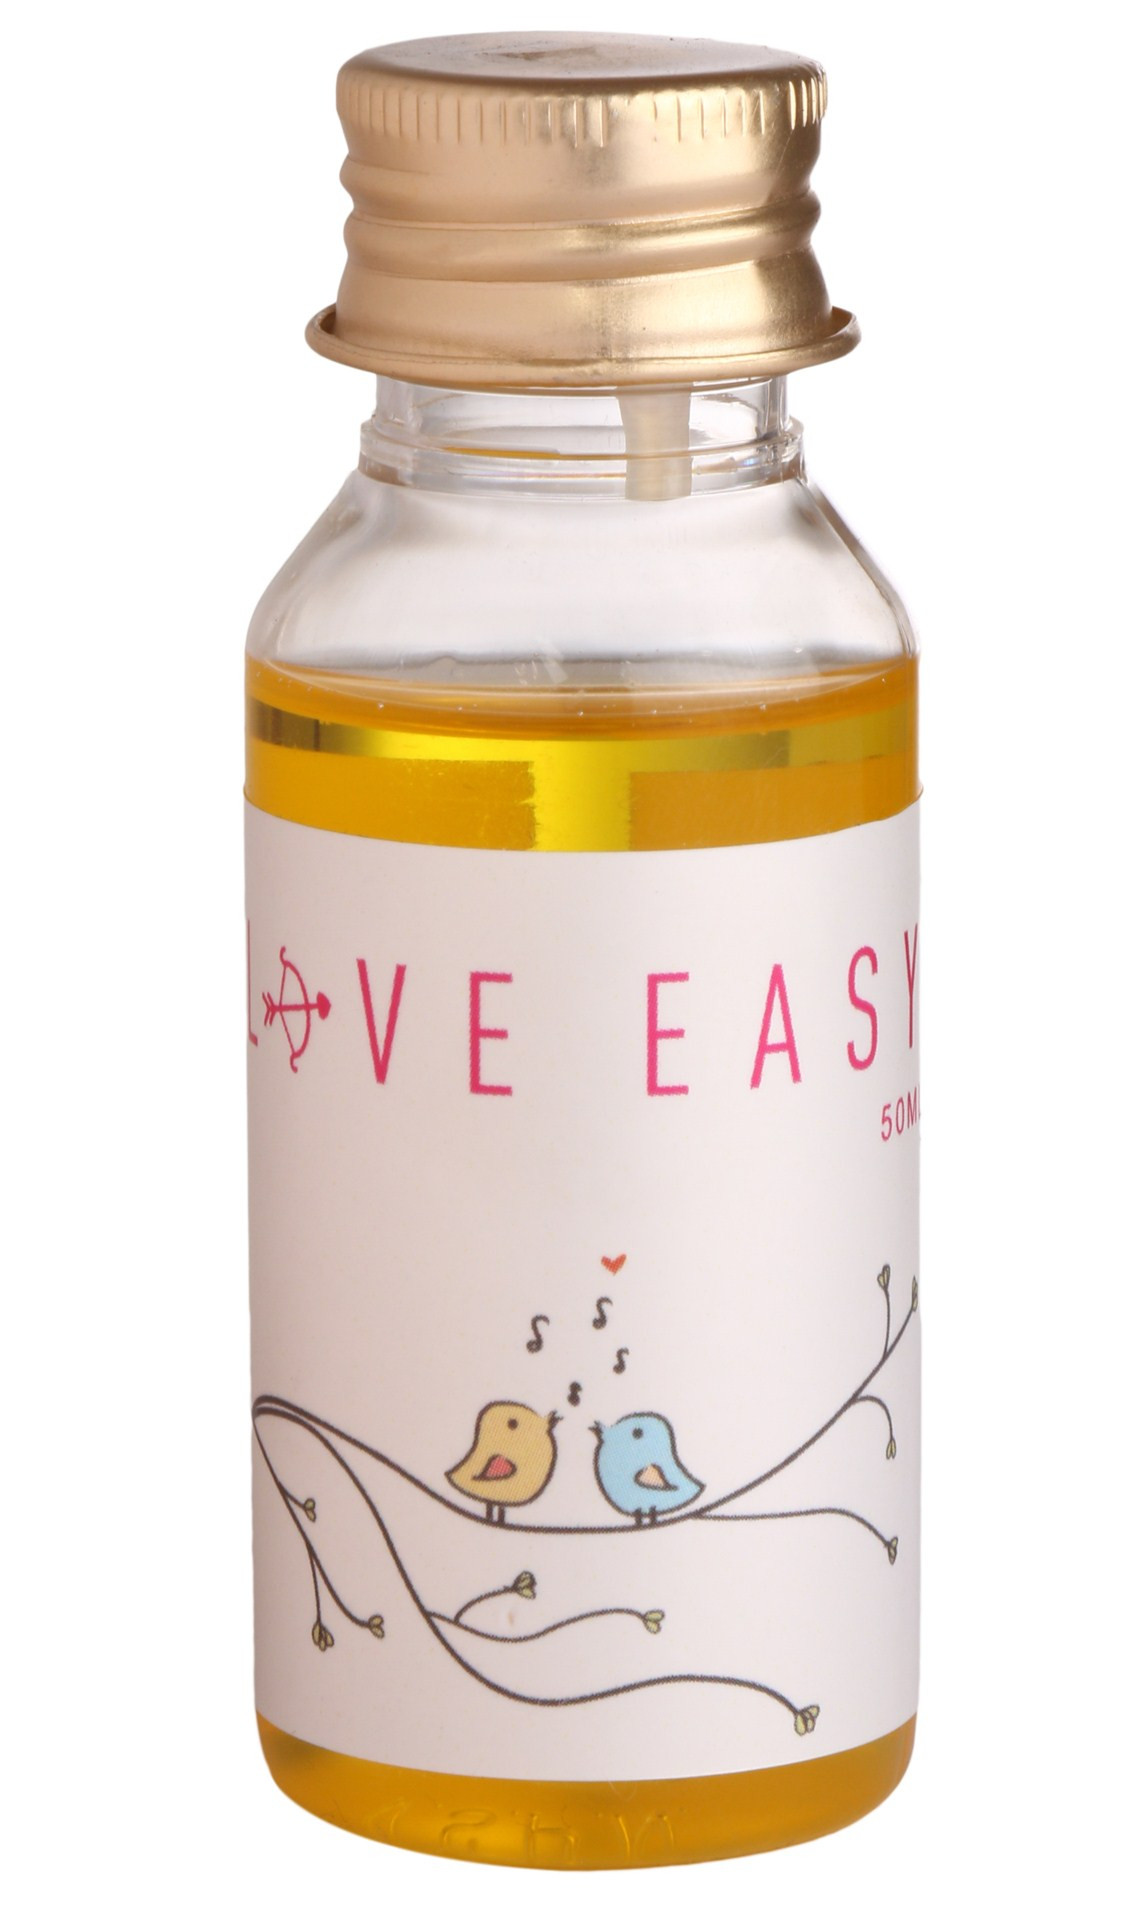 LoveEasy - Unisex 100% Natural Organic Personal Lubricant (Lube)